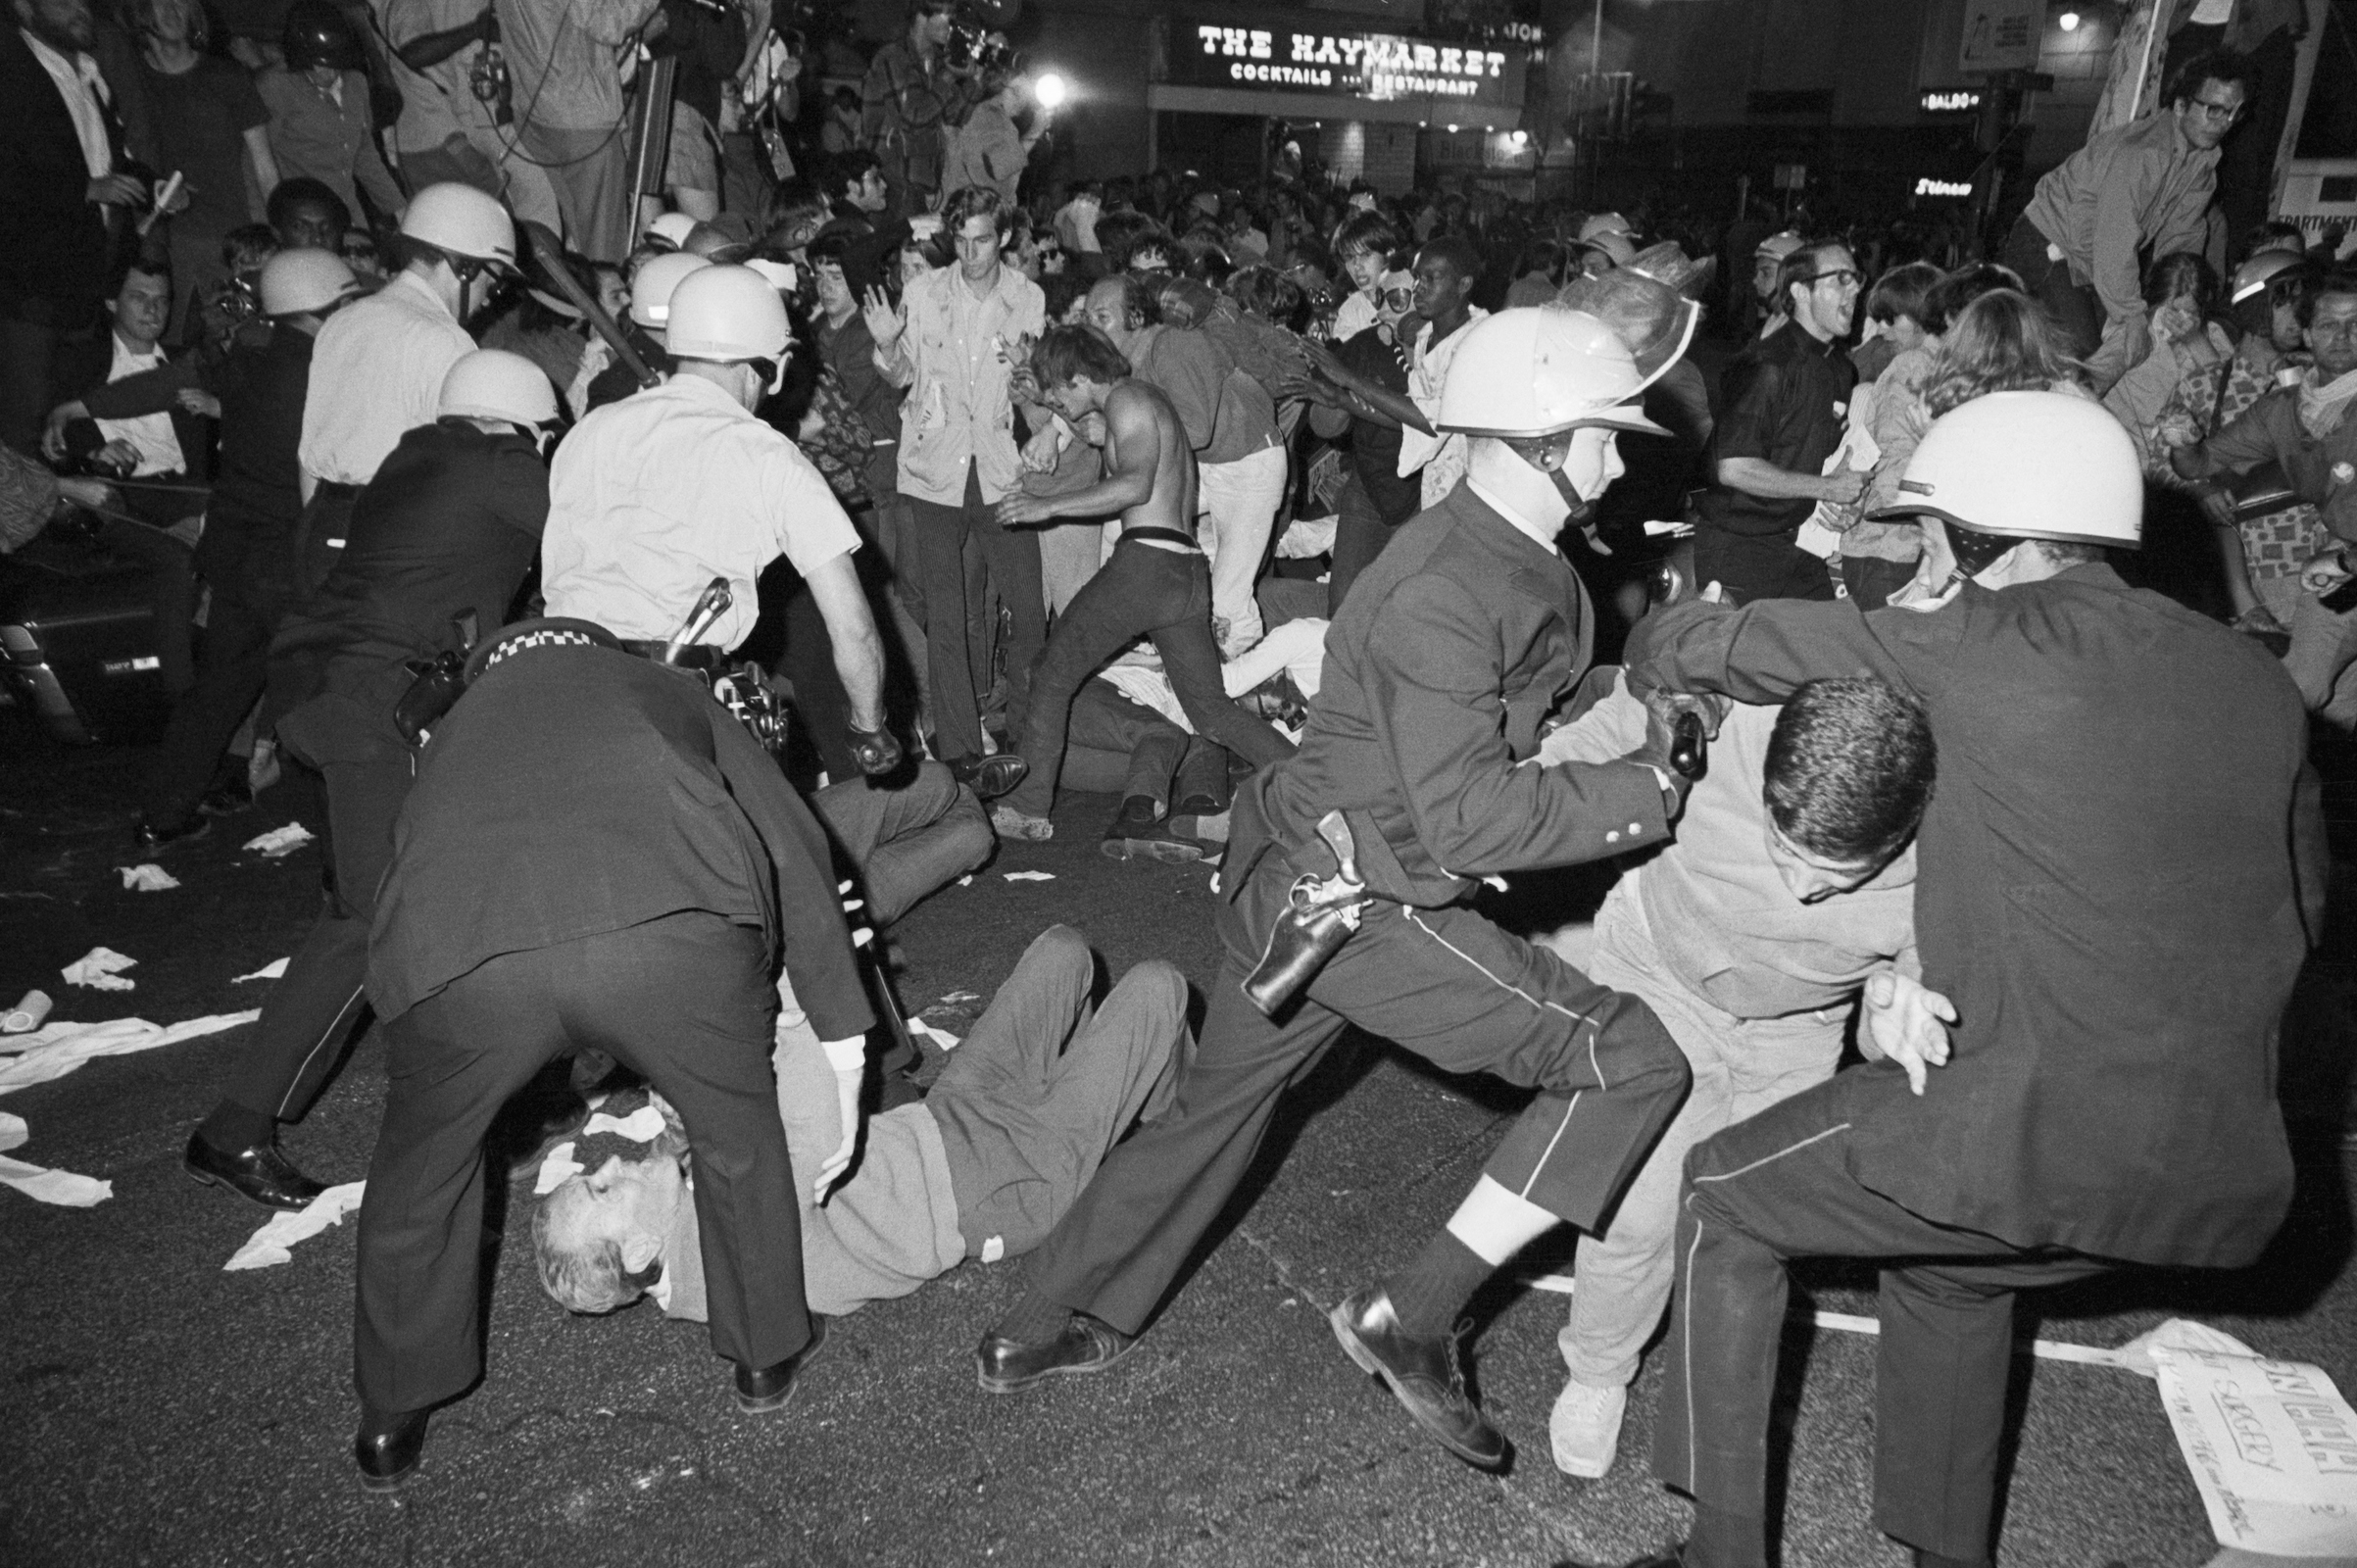 Police and demonstrators in a melee near the Conrad Hilton Hotel on Chicago's Michigan Avenue during the Democratic National Convention on Aug. 28, 1968